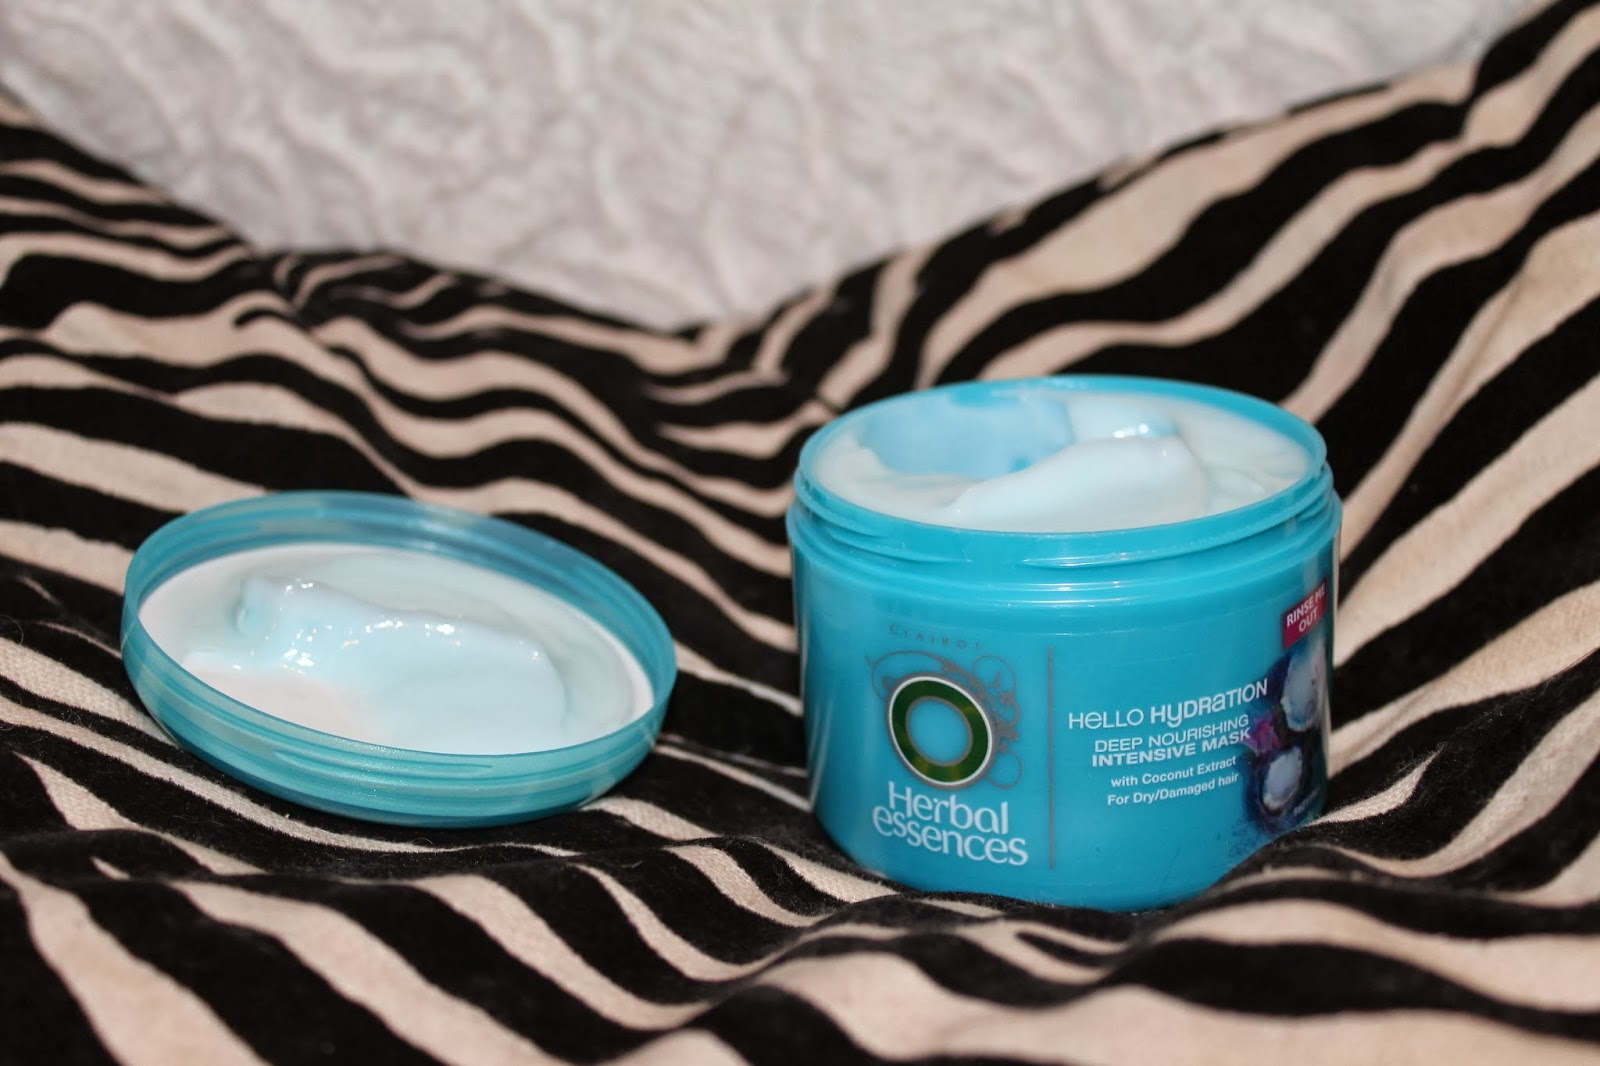 Herbal Essences Hello Hydration deep nourishing intensive mask blog post